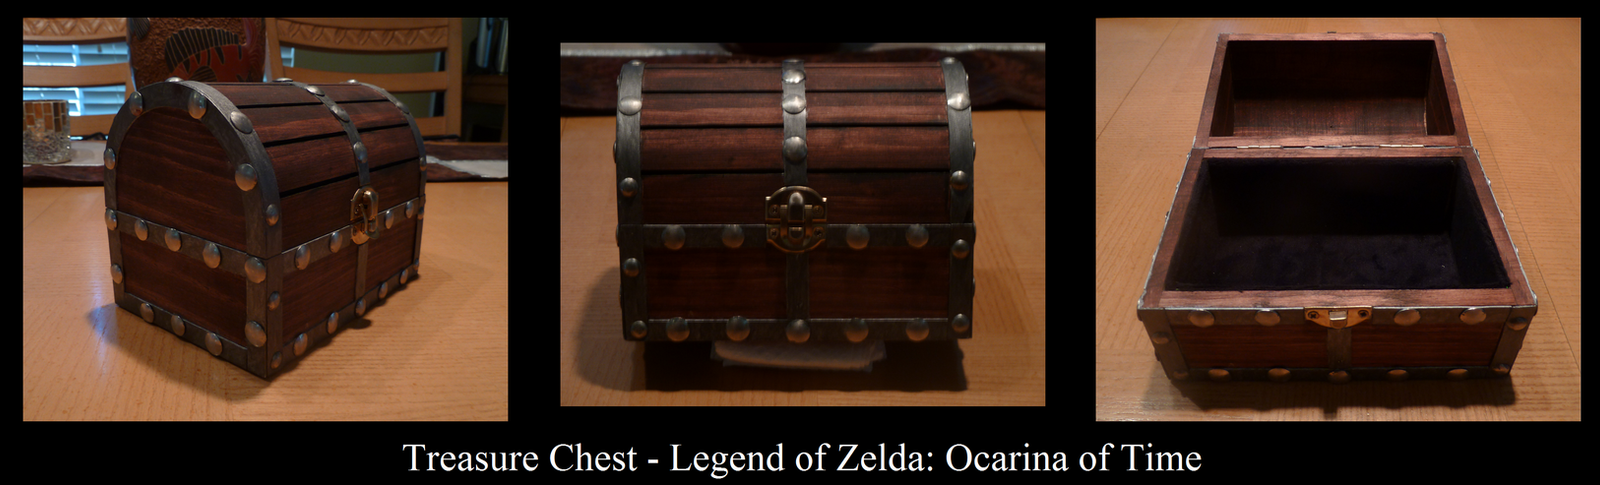 Treasure Chest Game Ocarina Of Time Guide